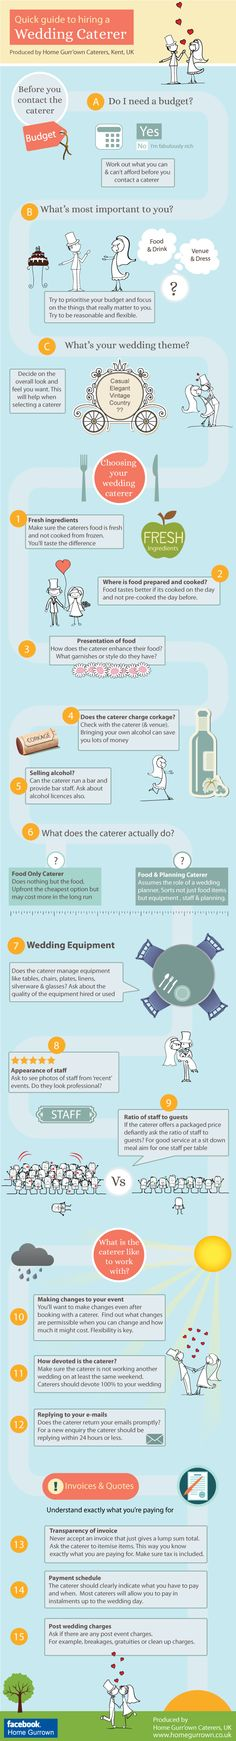 Infographic - How to choose a wedding caterer? THIS IS AWESOME www.homegurrown.co.uk